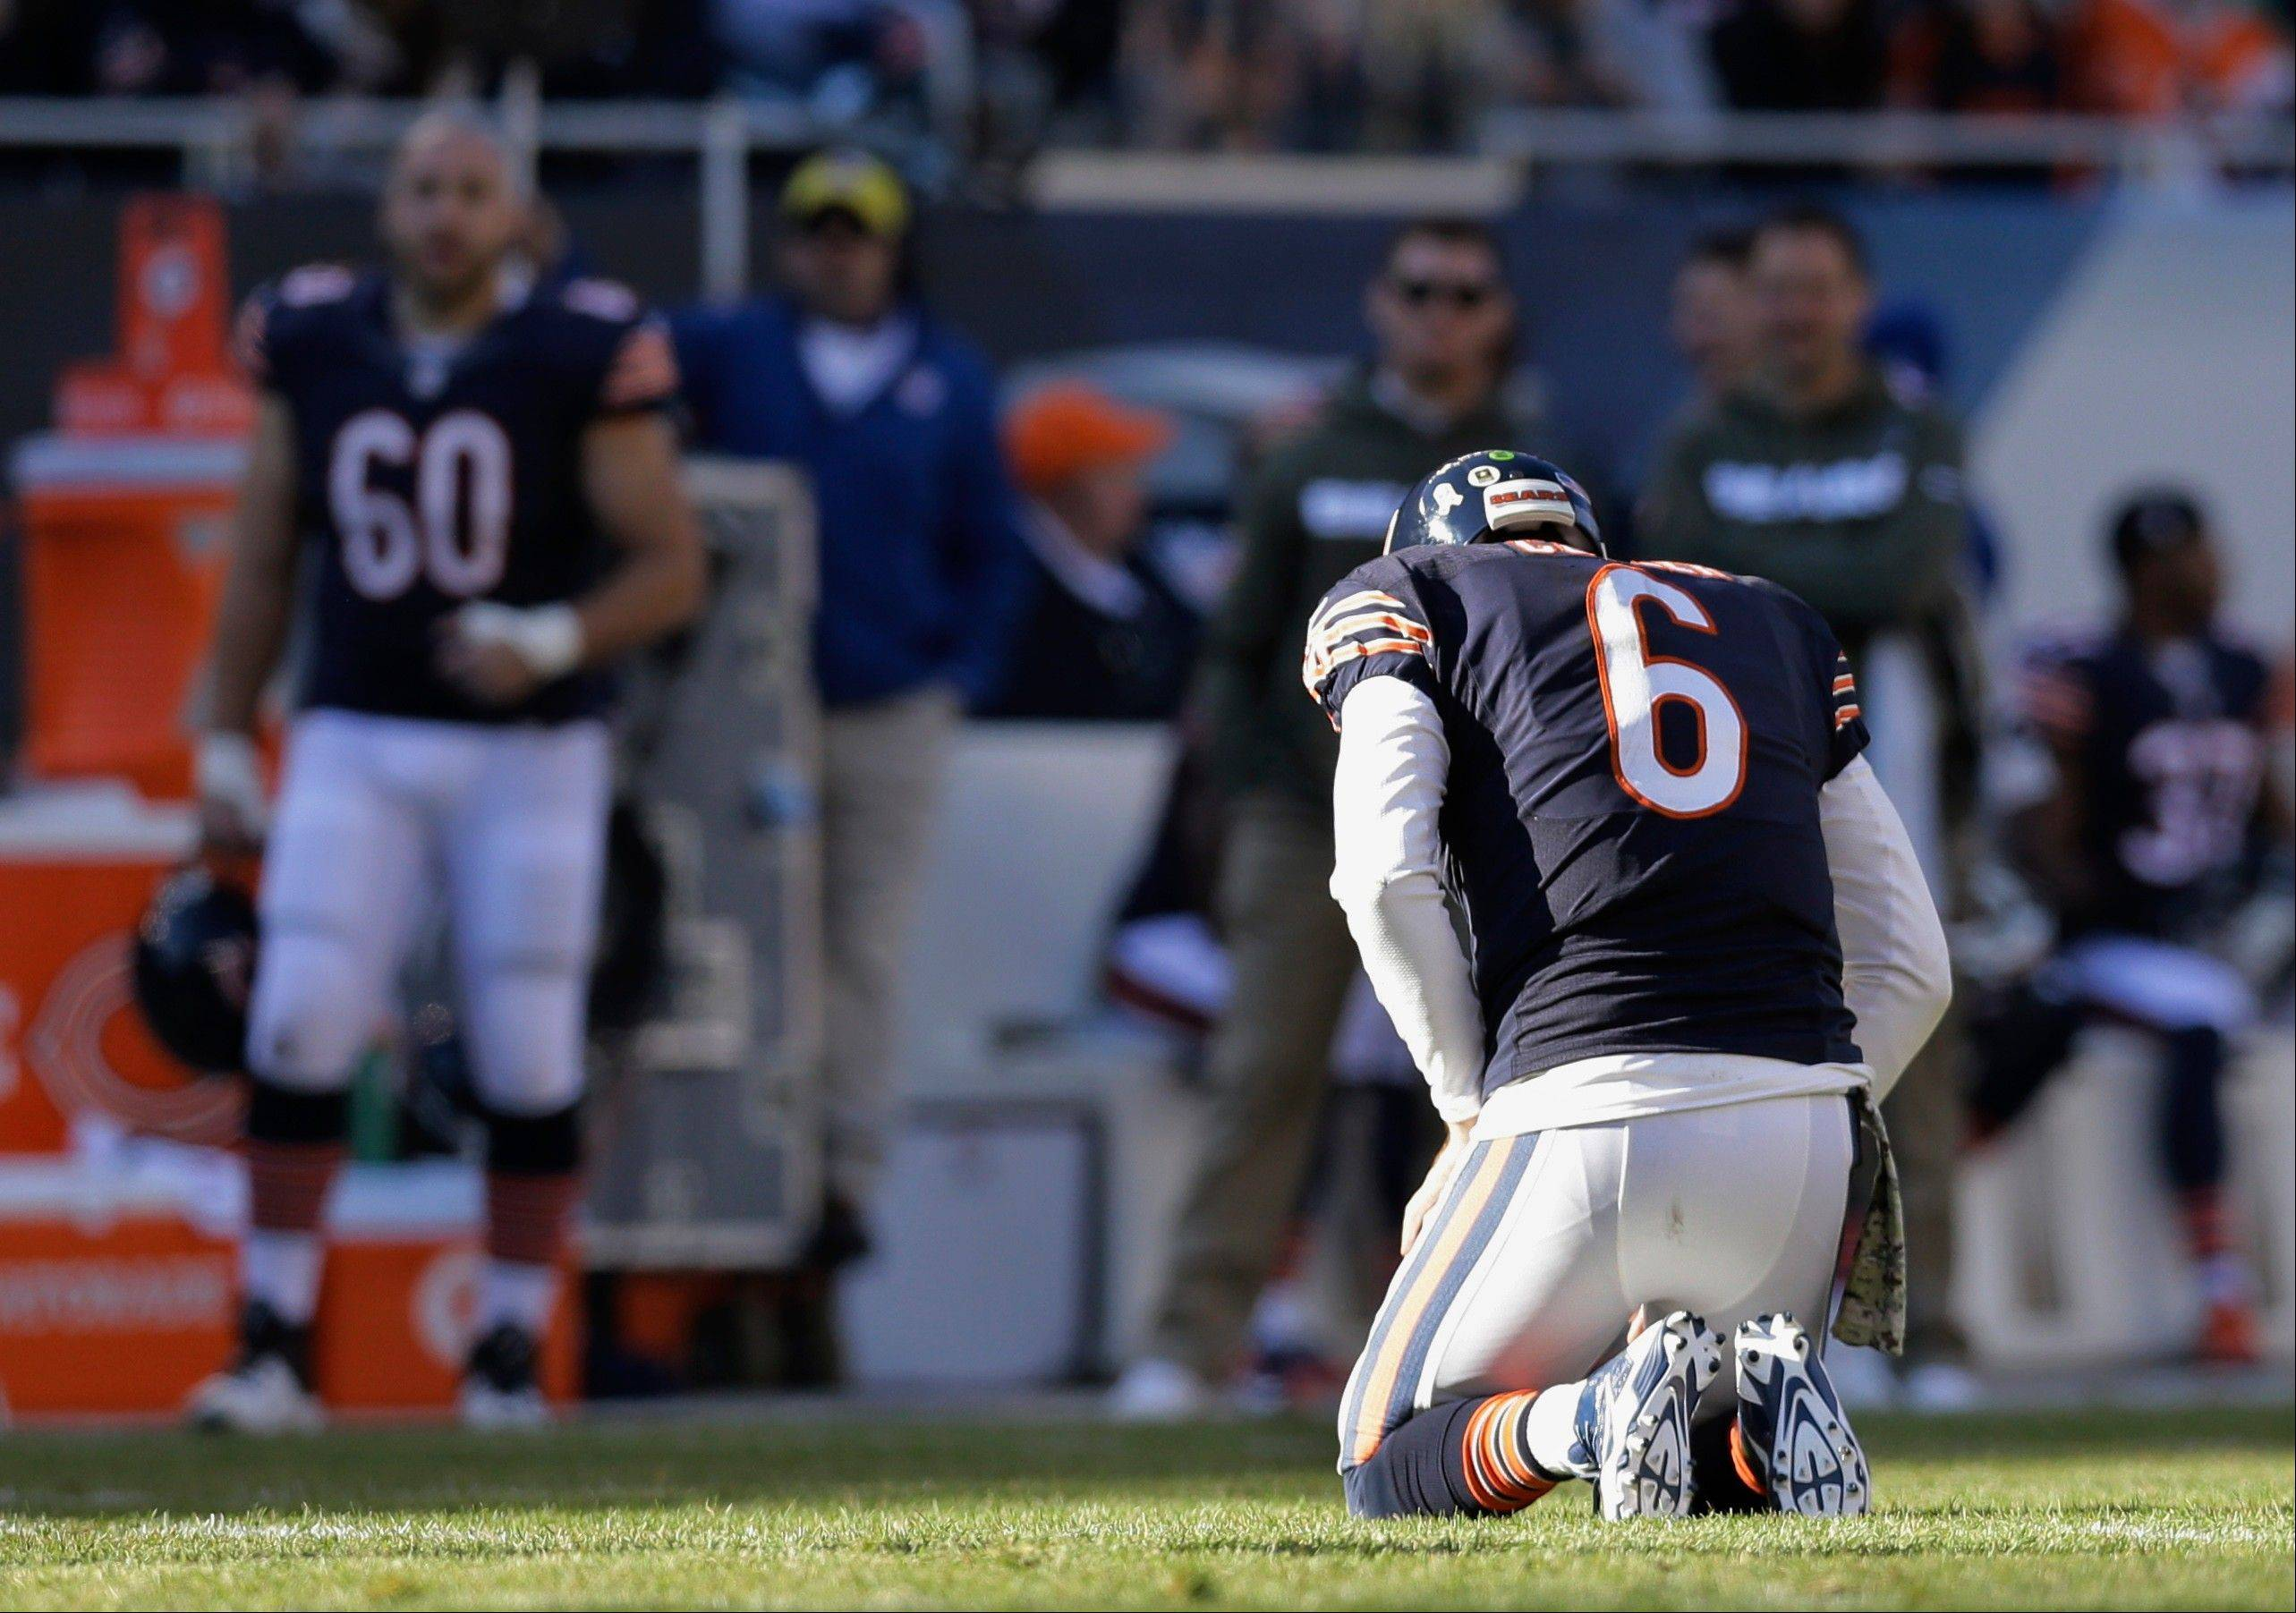 Chicago Bears quarterback Jay Cutler (6) kneels on the field after a play during the second half.